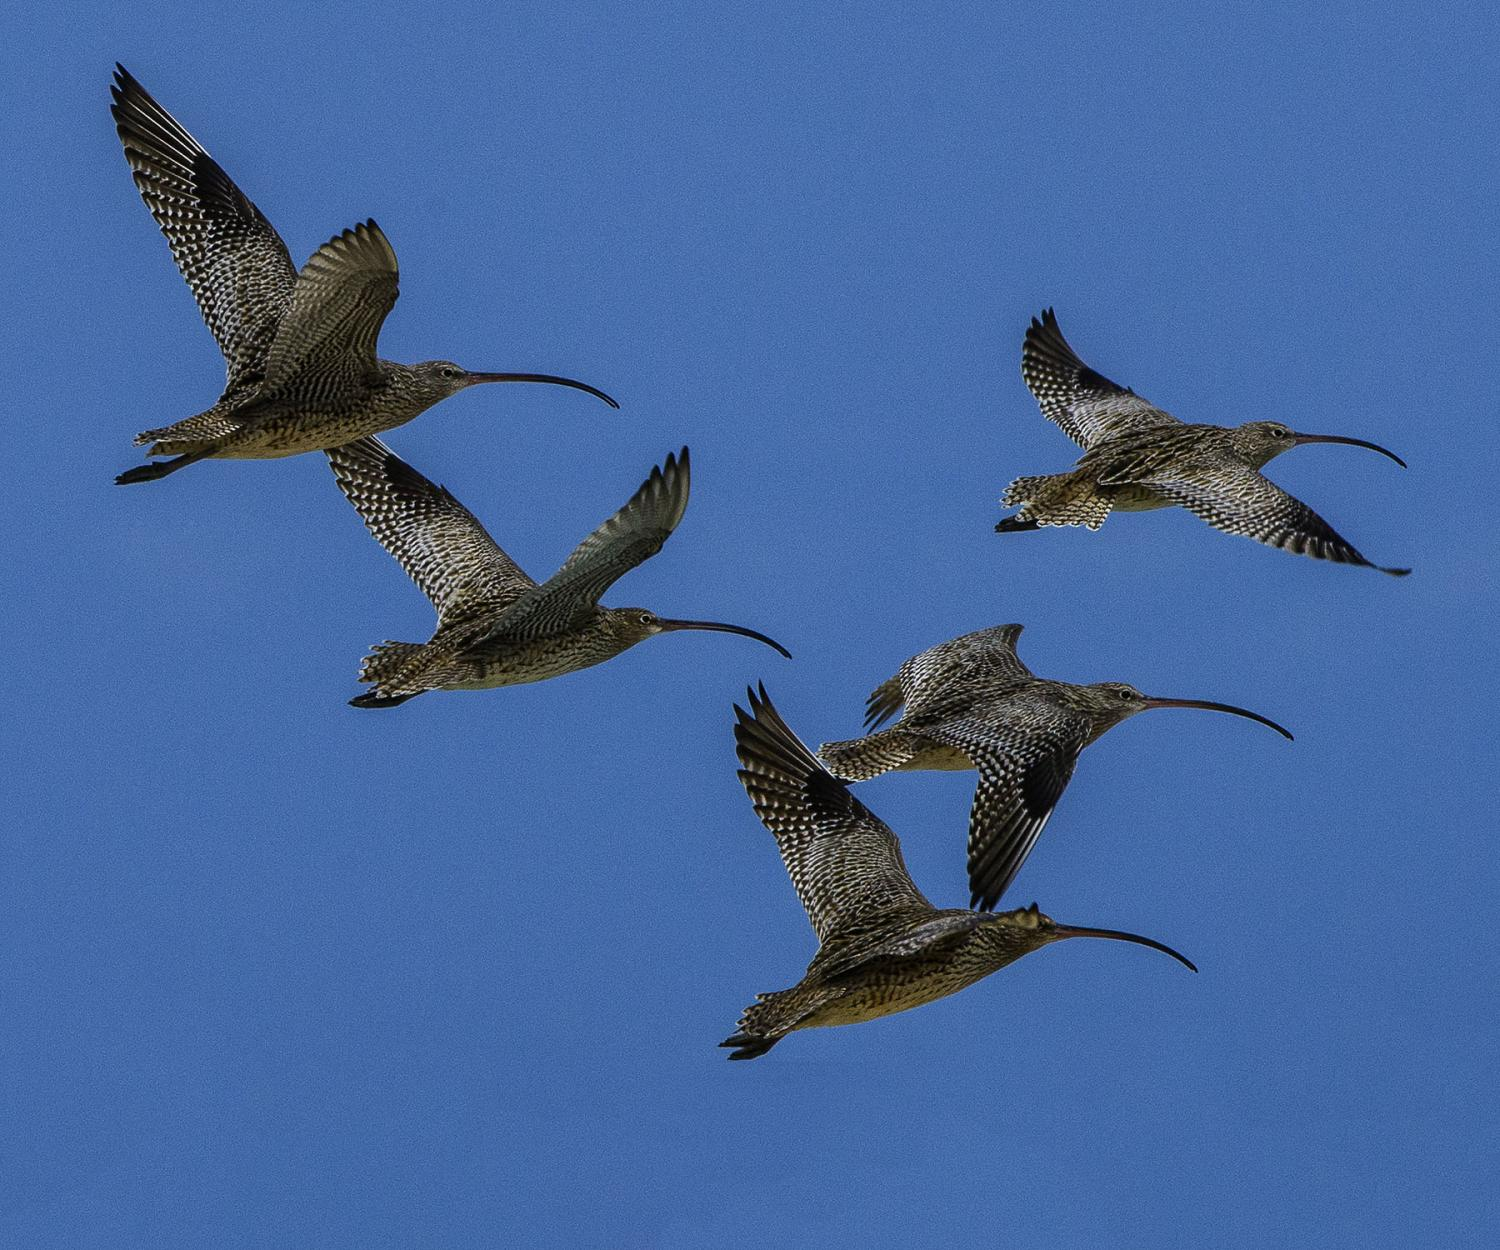 Migratory birds 'lack world protection'